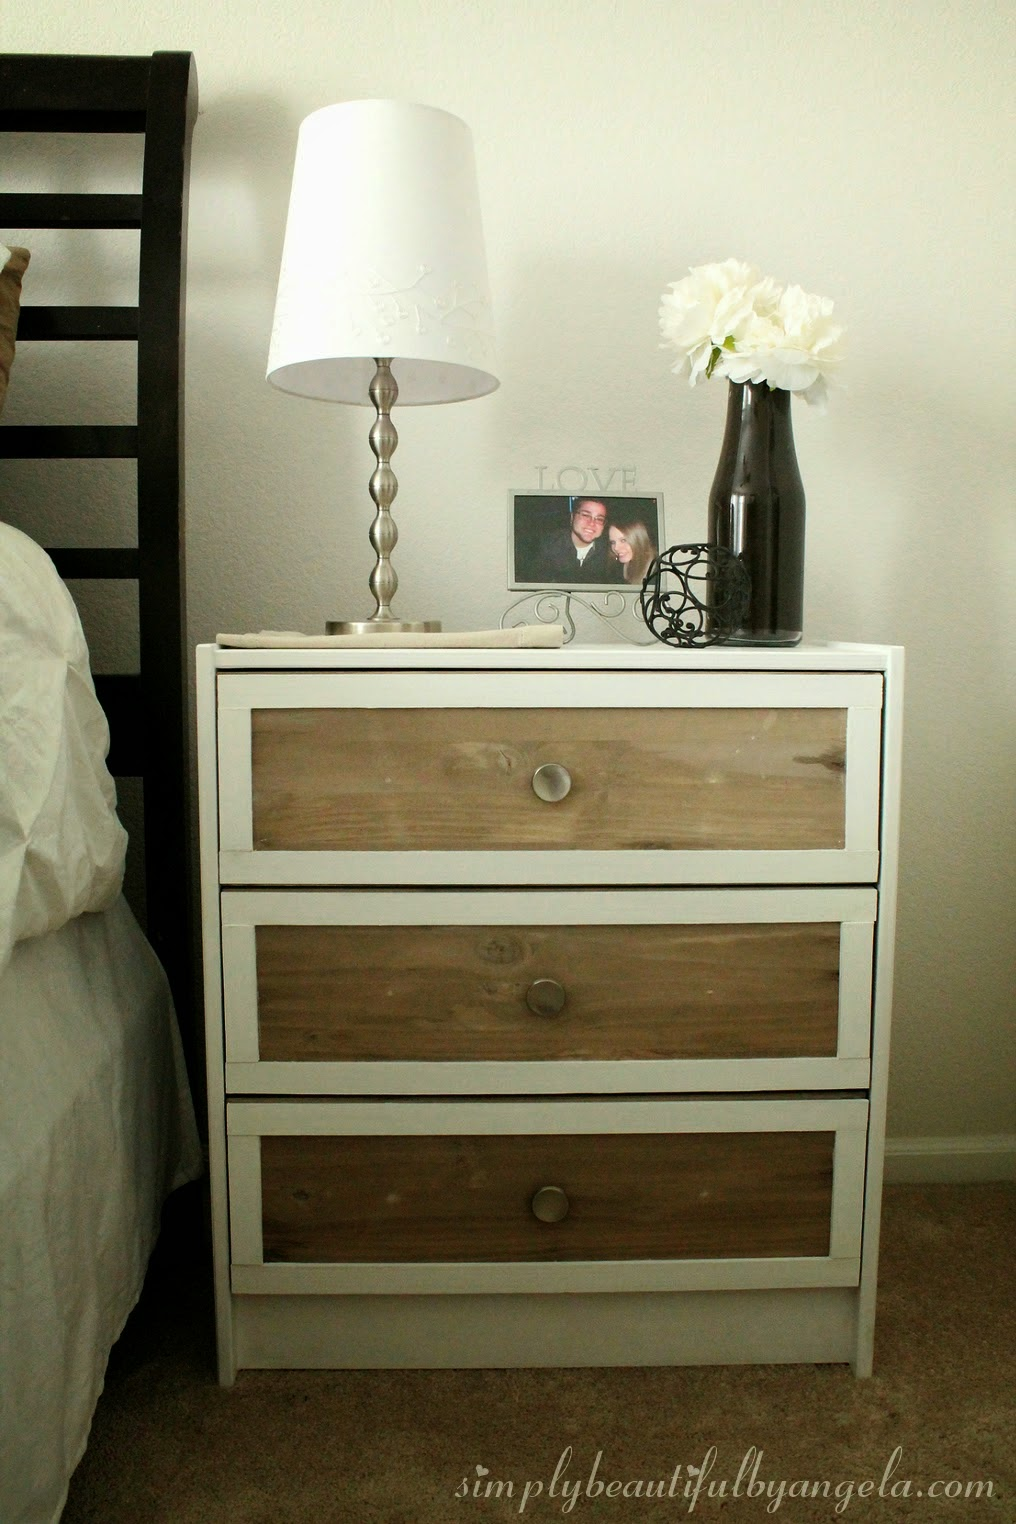 ikea-rast-nightstand-hack